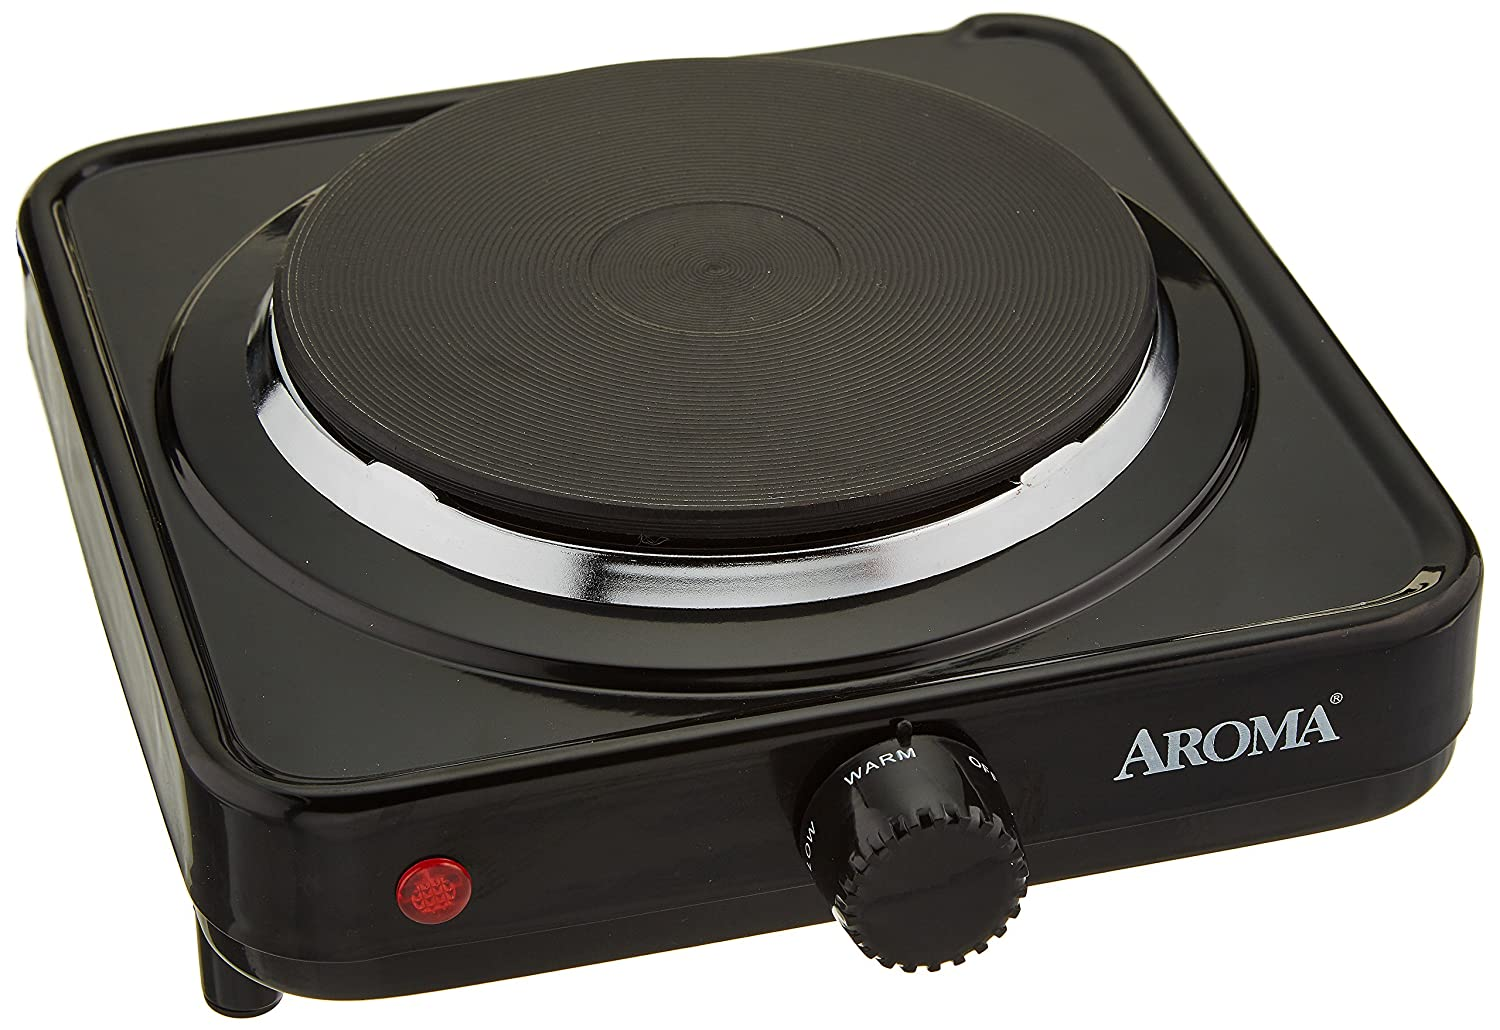 Aroma Housewares AHP-303/CHP-303 Single Hot Plate, Black